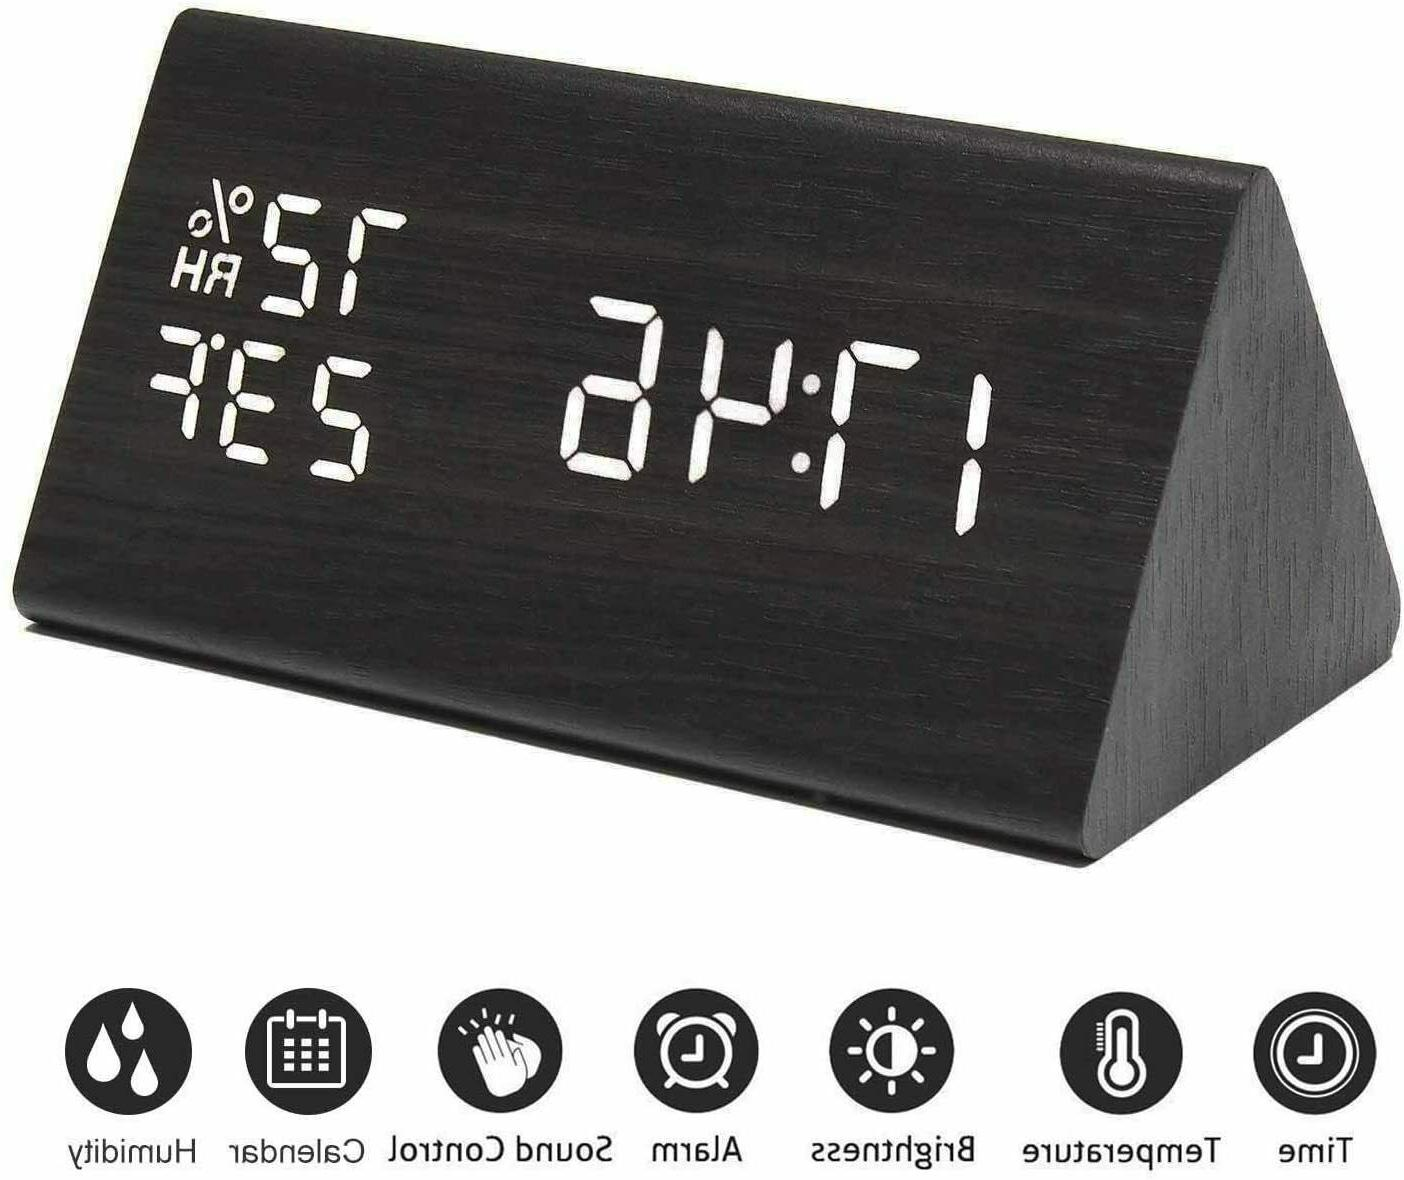 MEKO Wood Digital Clocks Bedrooms LED Display, 3 Levels, Snooze